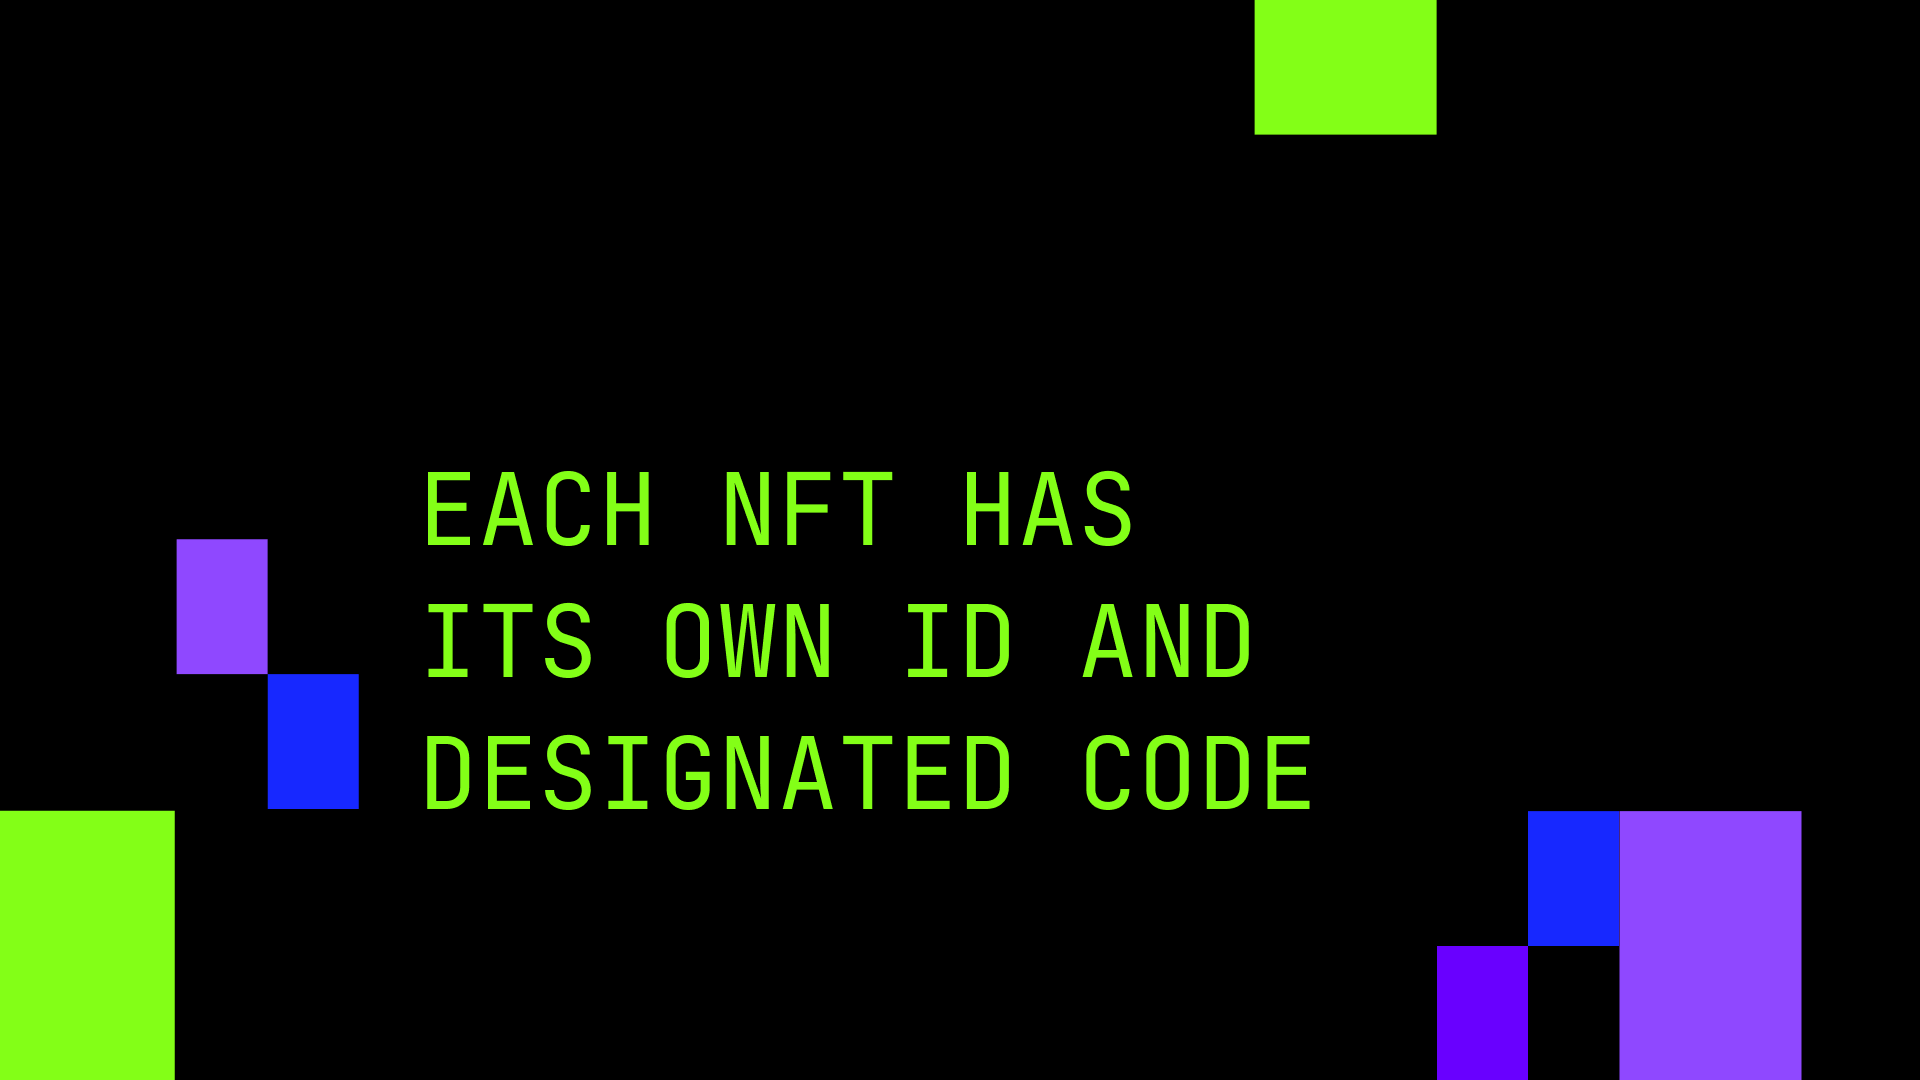 Each NFT has its own ID and designated code.